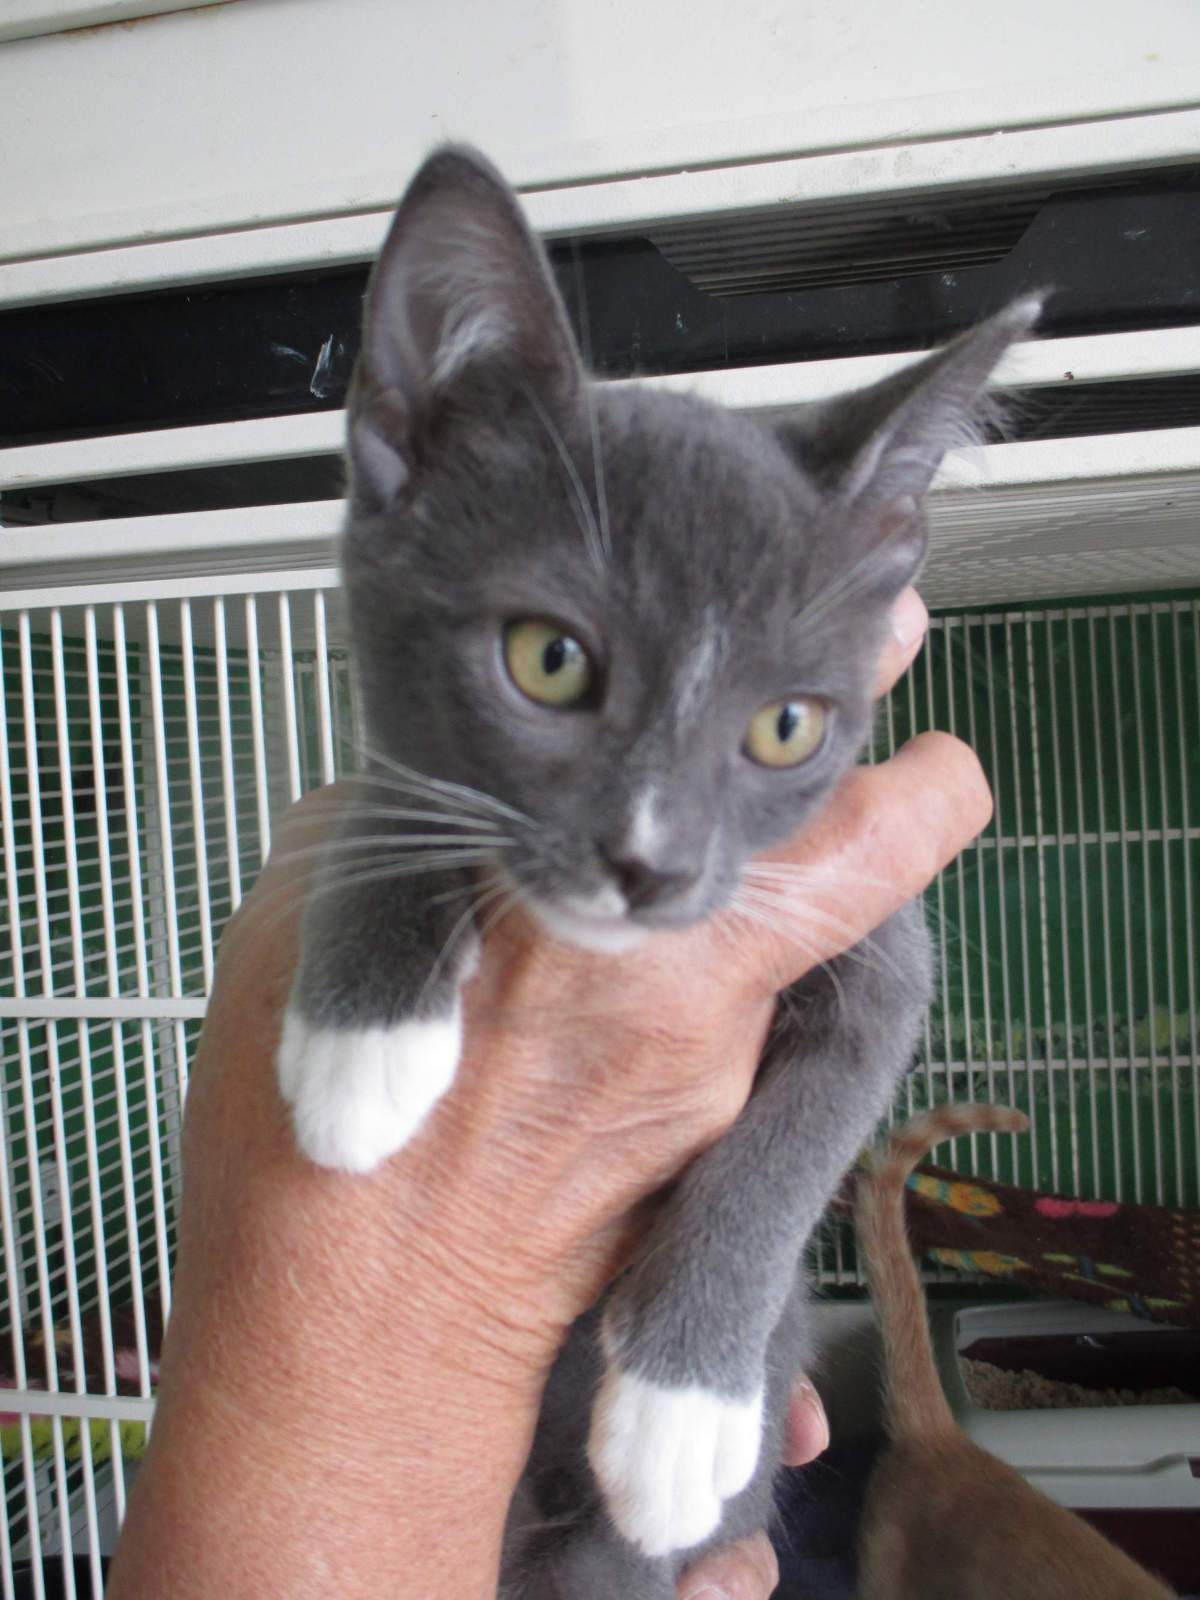 Gray And White Kittens For Adoption You Can Get More Details By Clicking On The Image Cattricks Kitten Adoption Grey Kitten Grey And White Cat